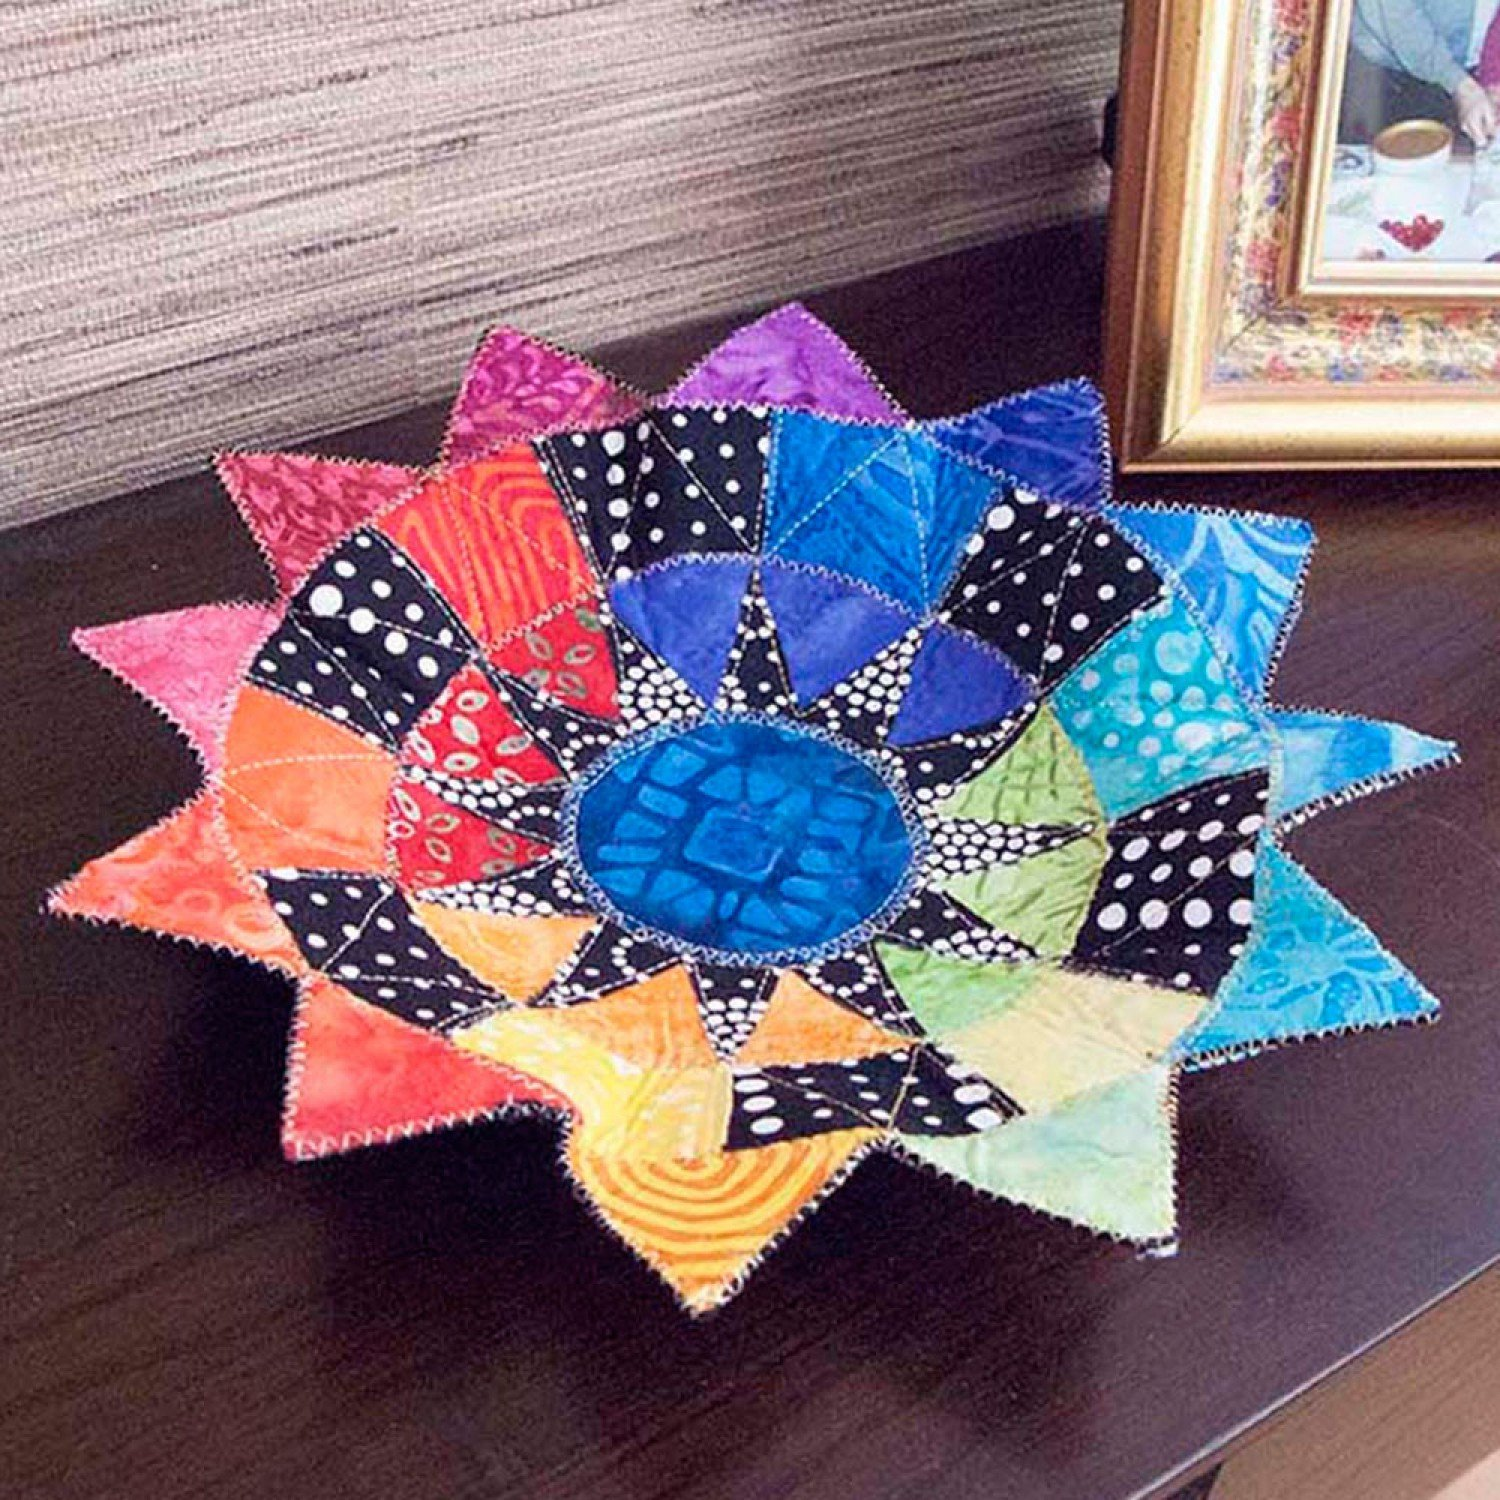 New York Beauty Bowl from Poorhouse Quilt Designs